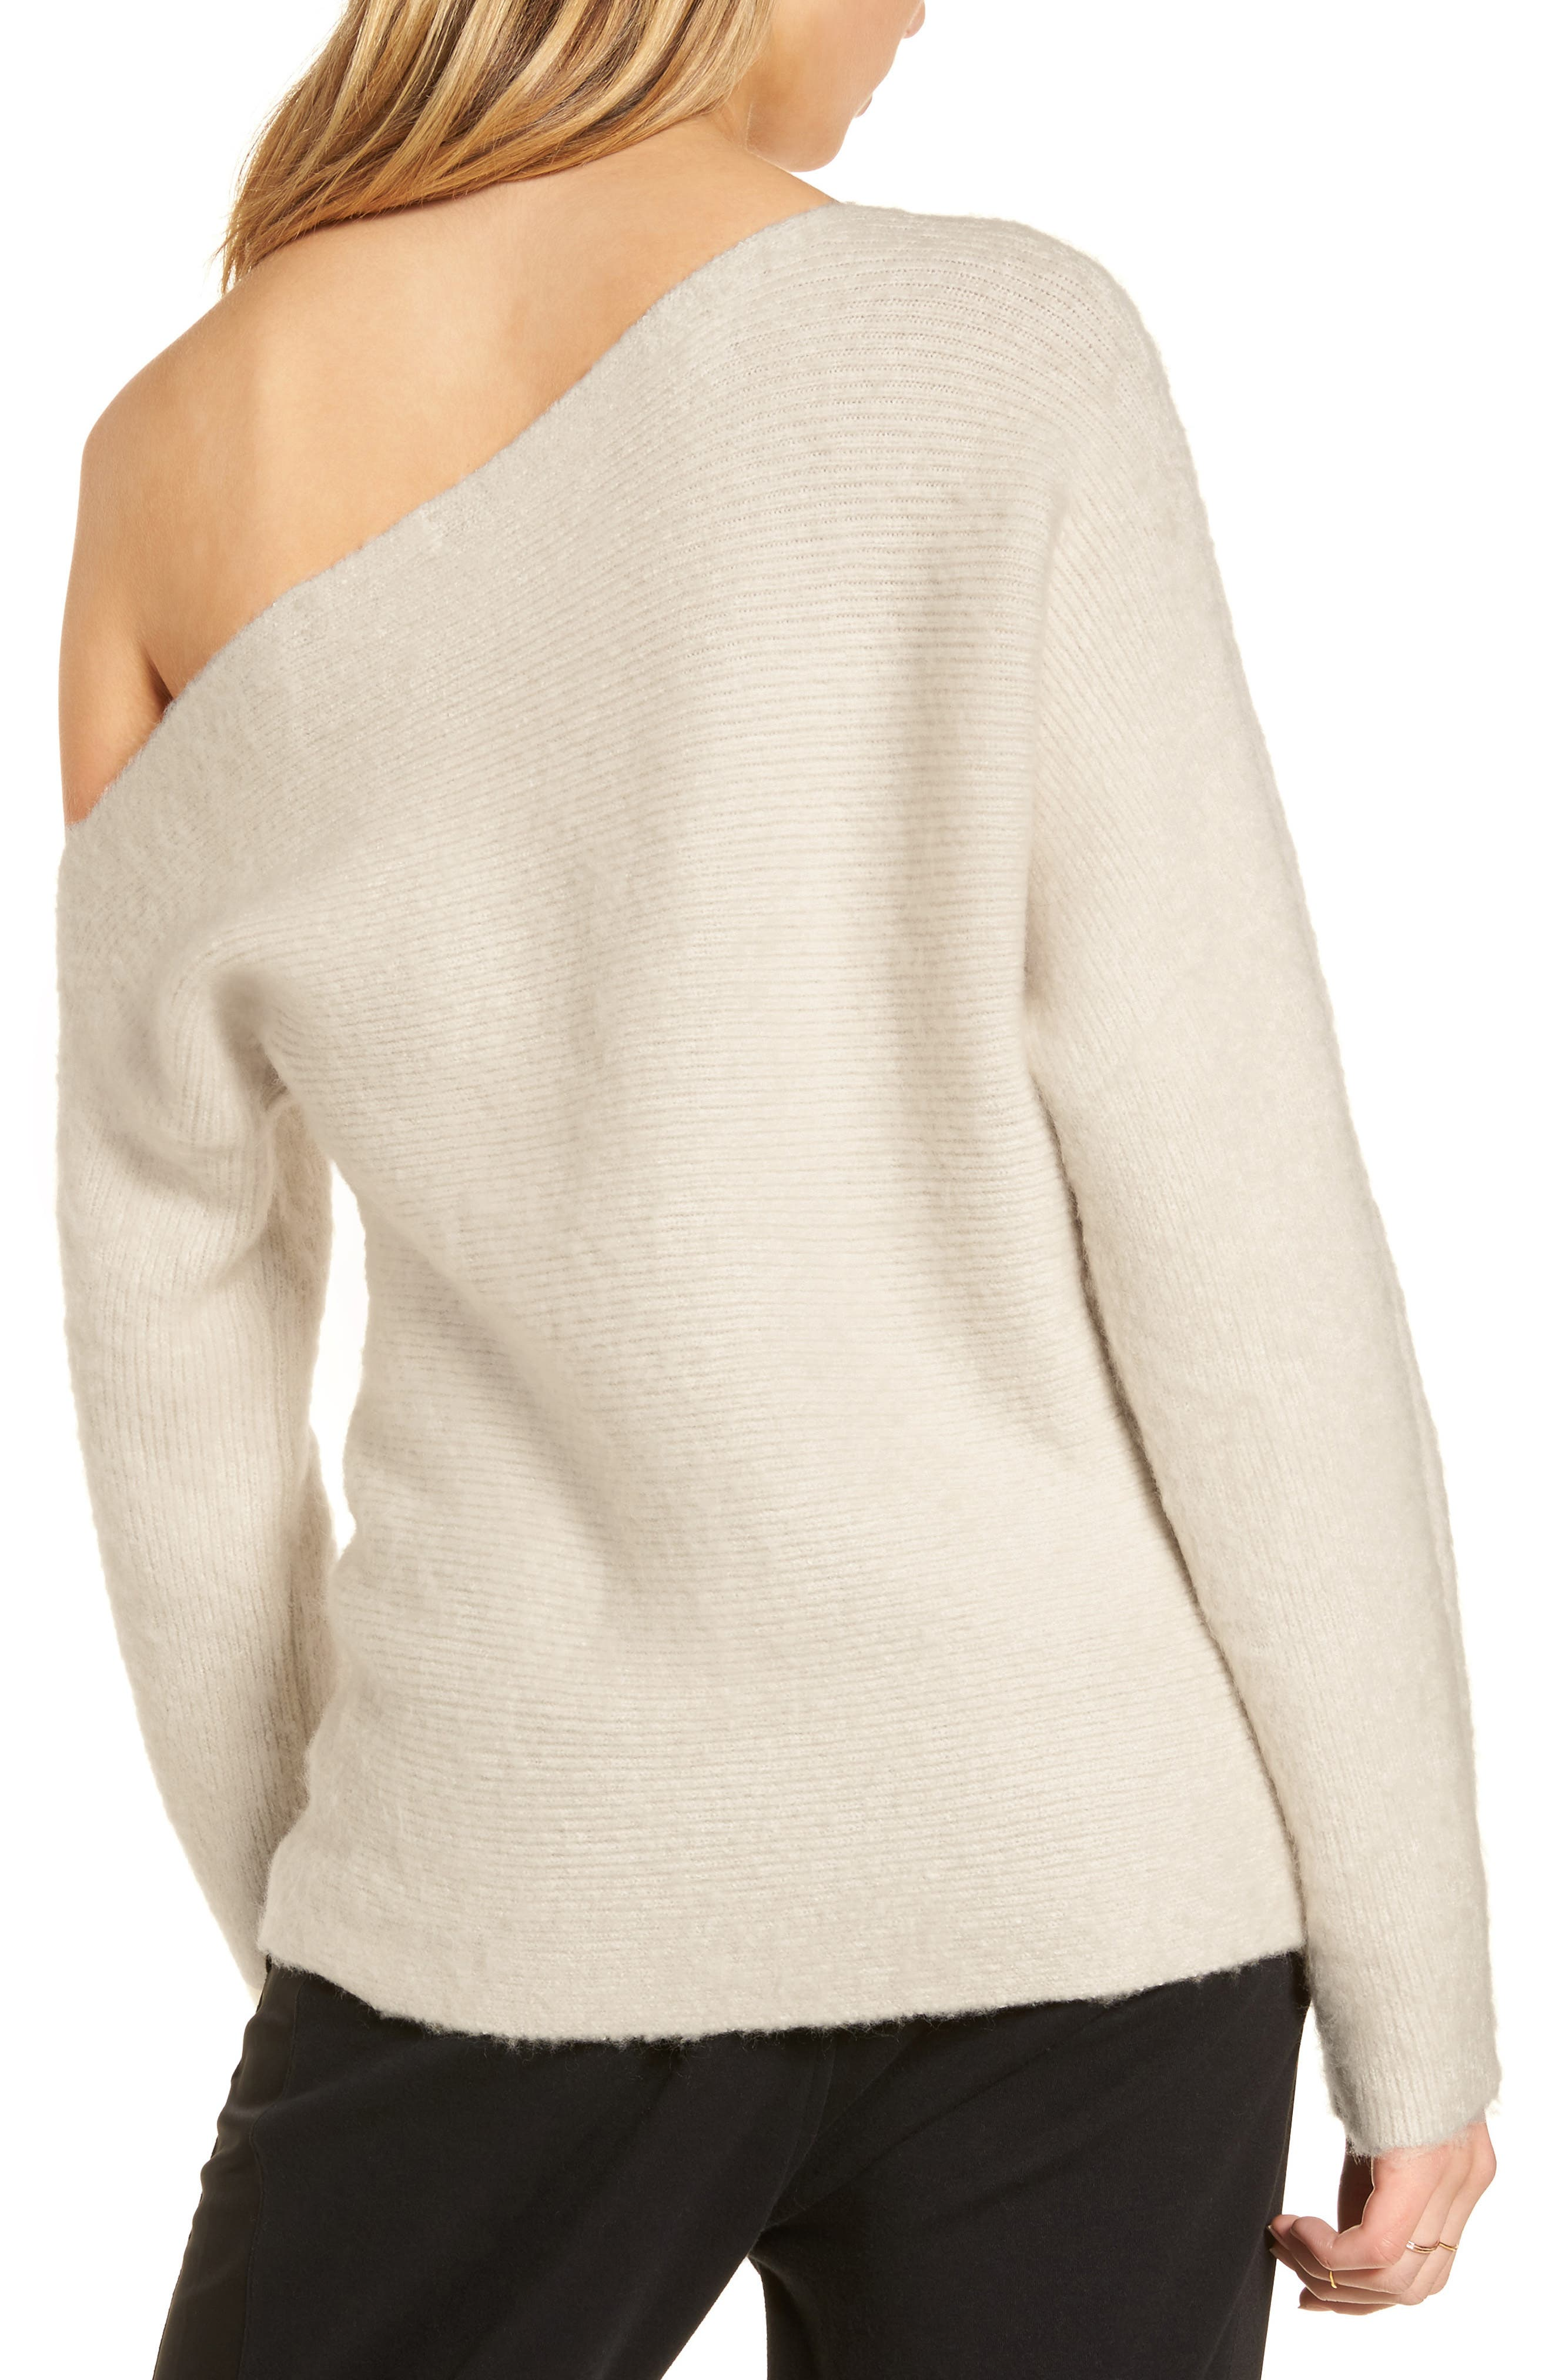 TREASURE & BOND,                             One-Shoulder Ribbed Sweater,                             Alternate thumbnail 2, color,                             BEIGE OATMEAL LIGHT HEATHER